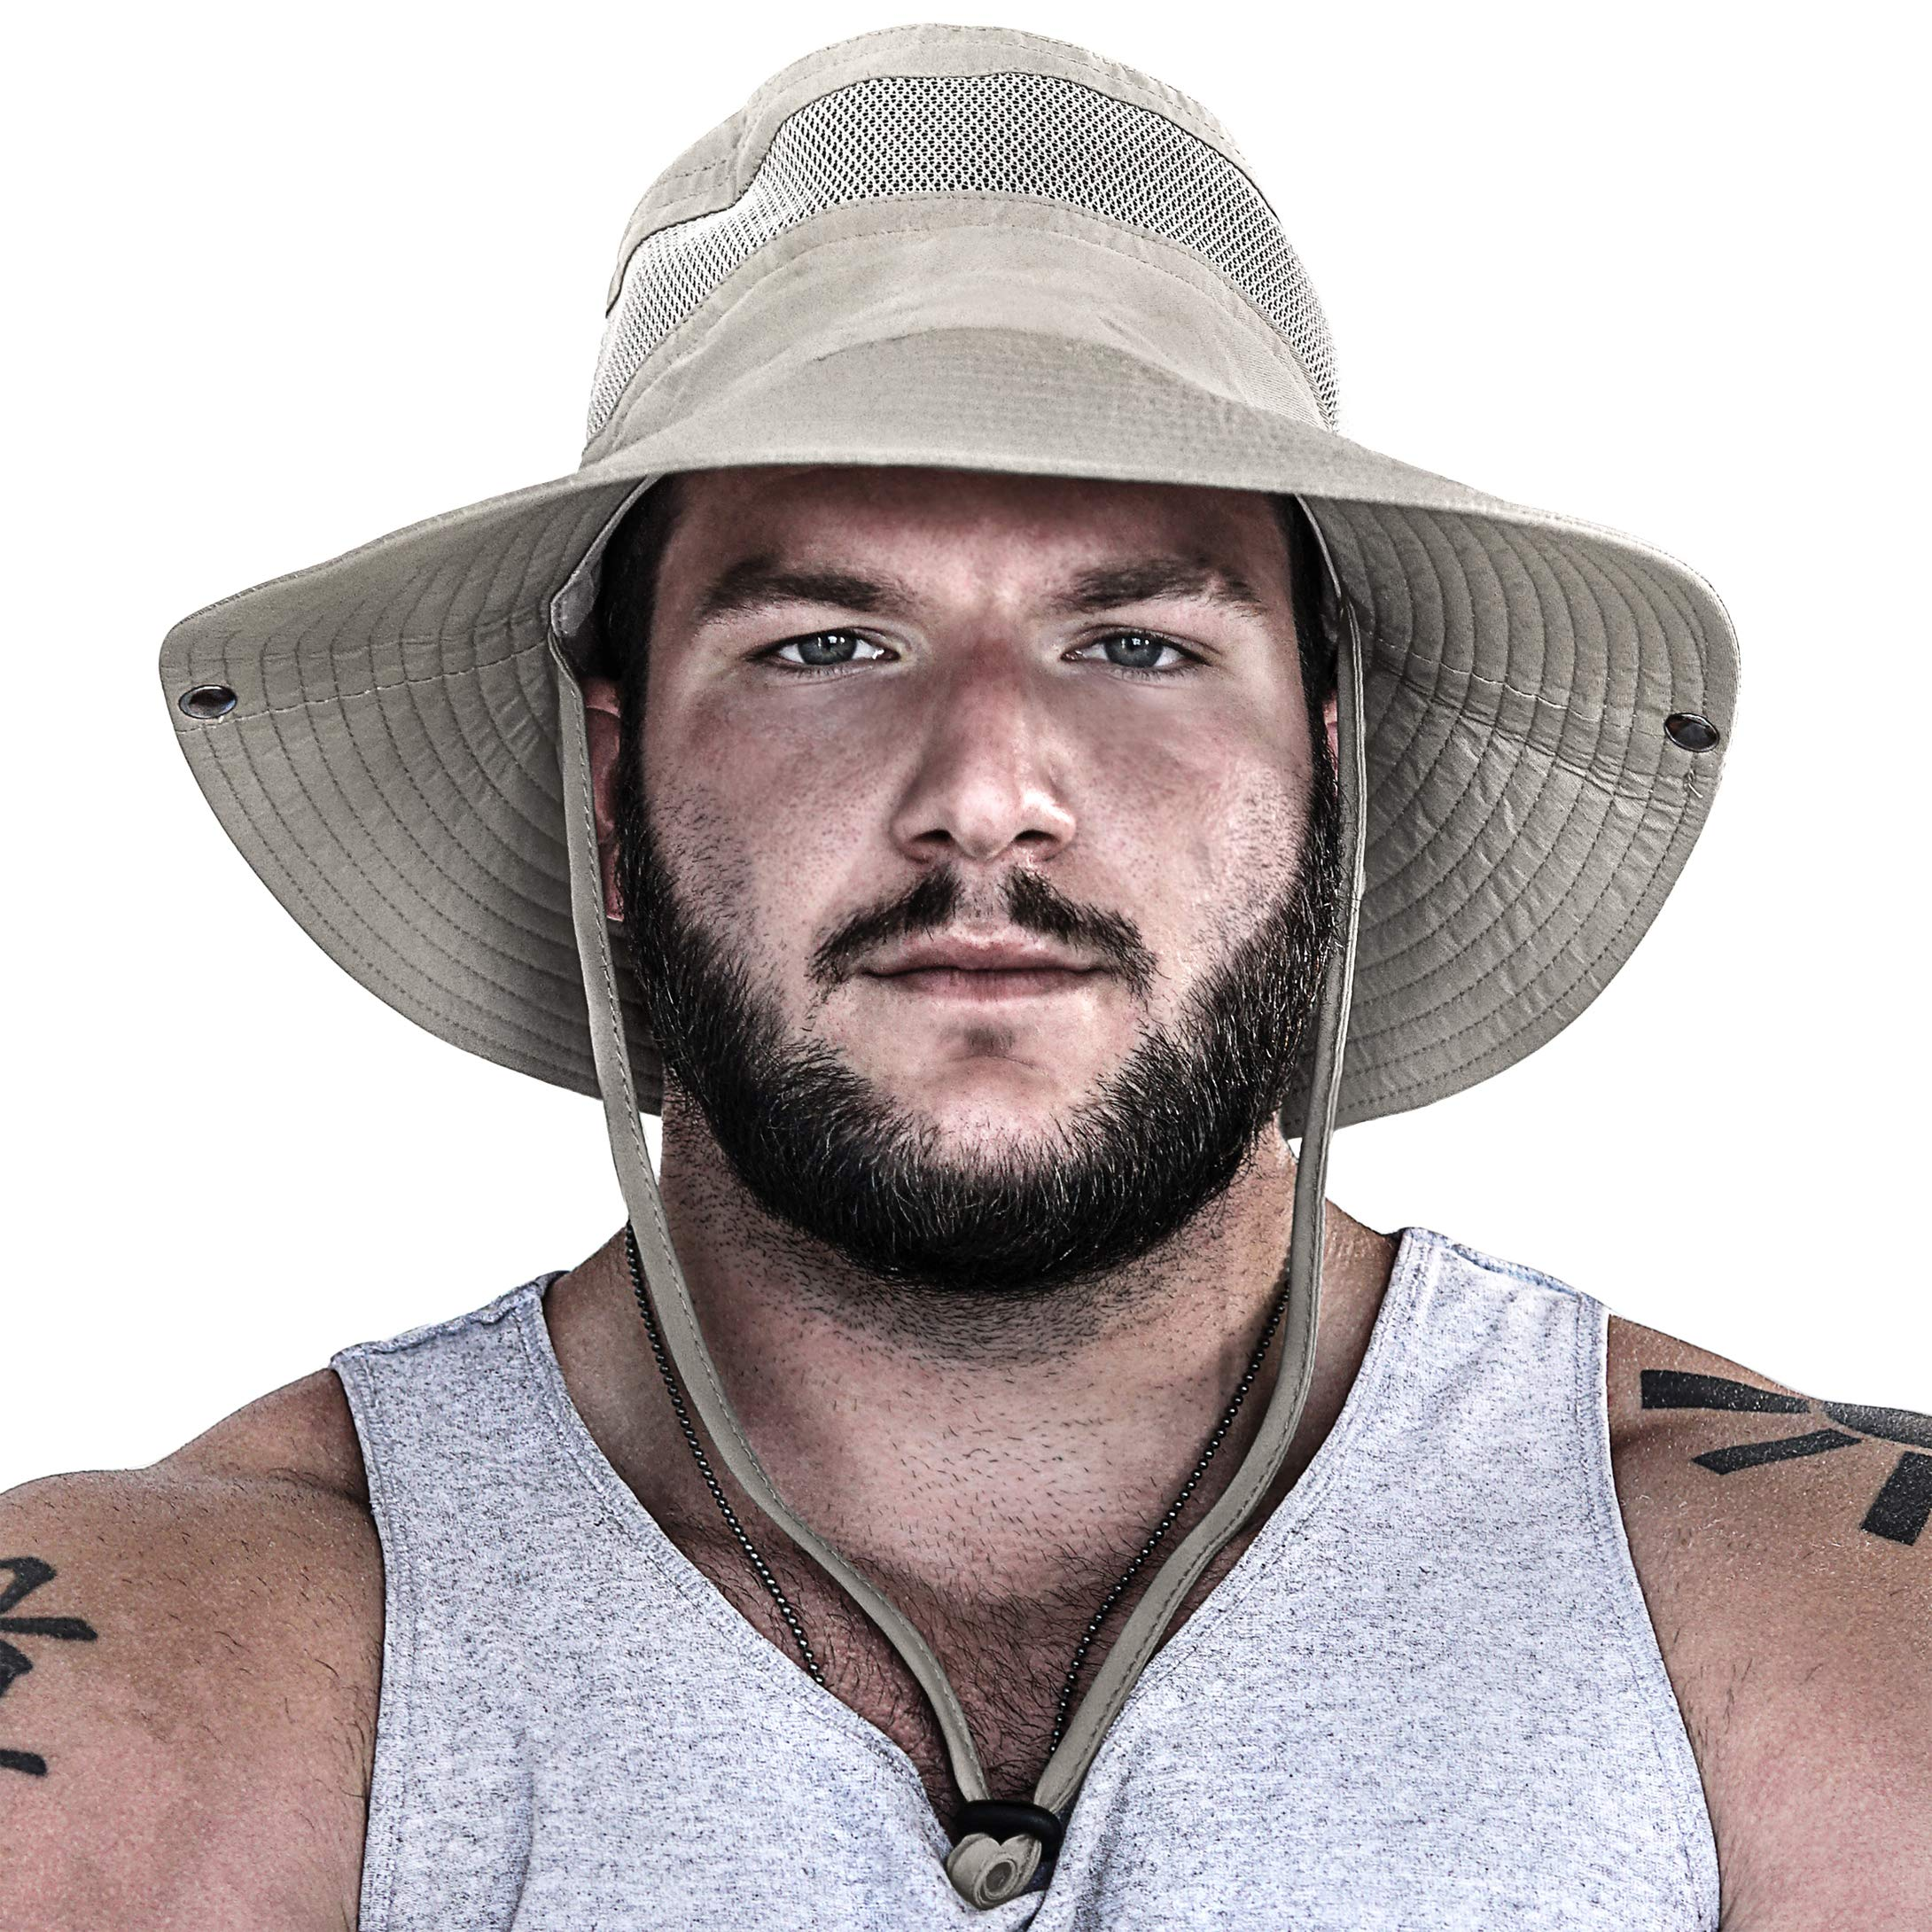 GearTOP Sun Hats for Women and Men | This Summer Cap is Your Best Choice for Sun Protection (Beige Fishing Hat) by GearTOP (Image #2)